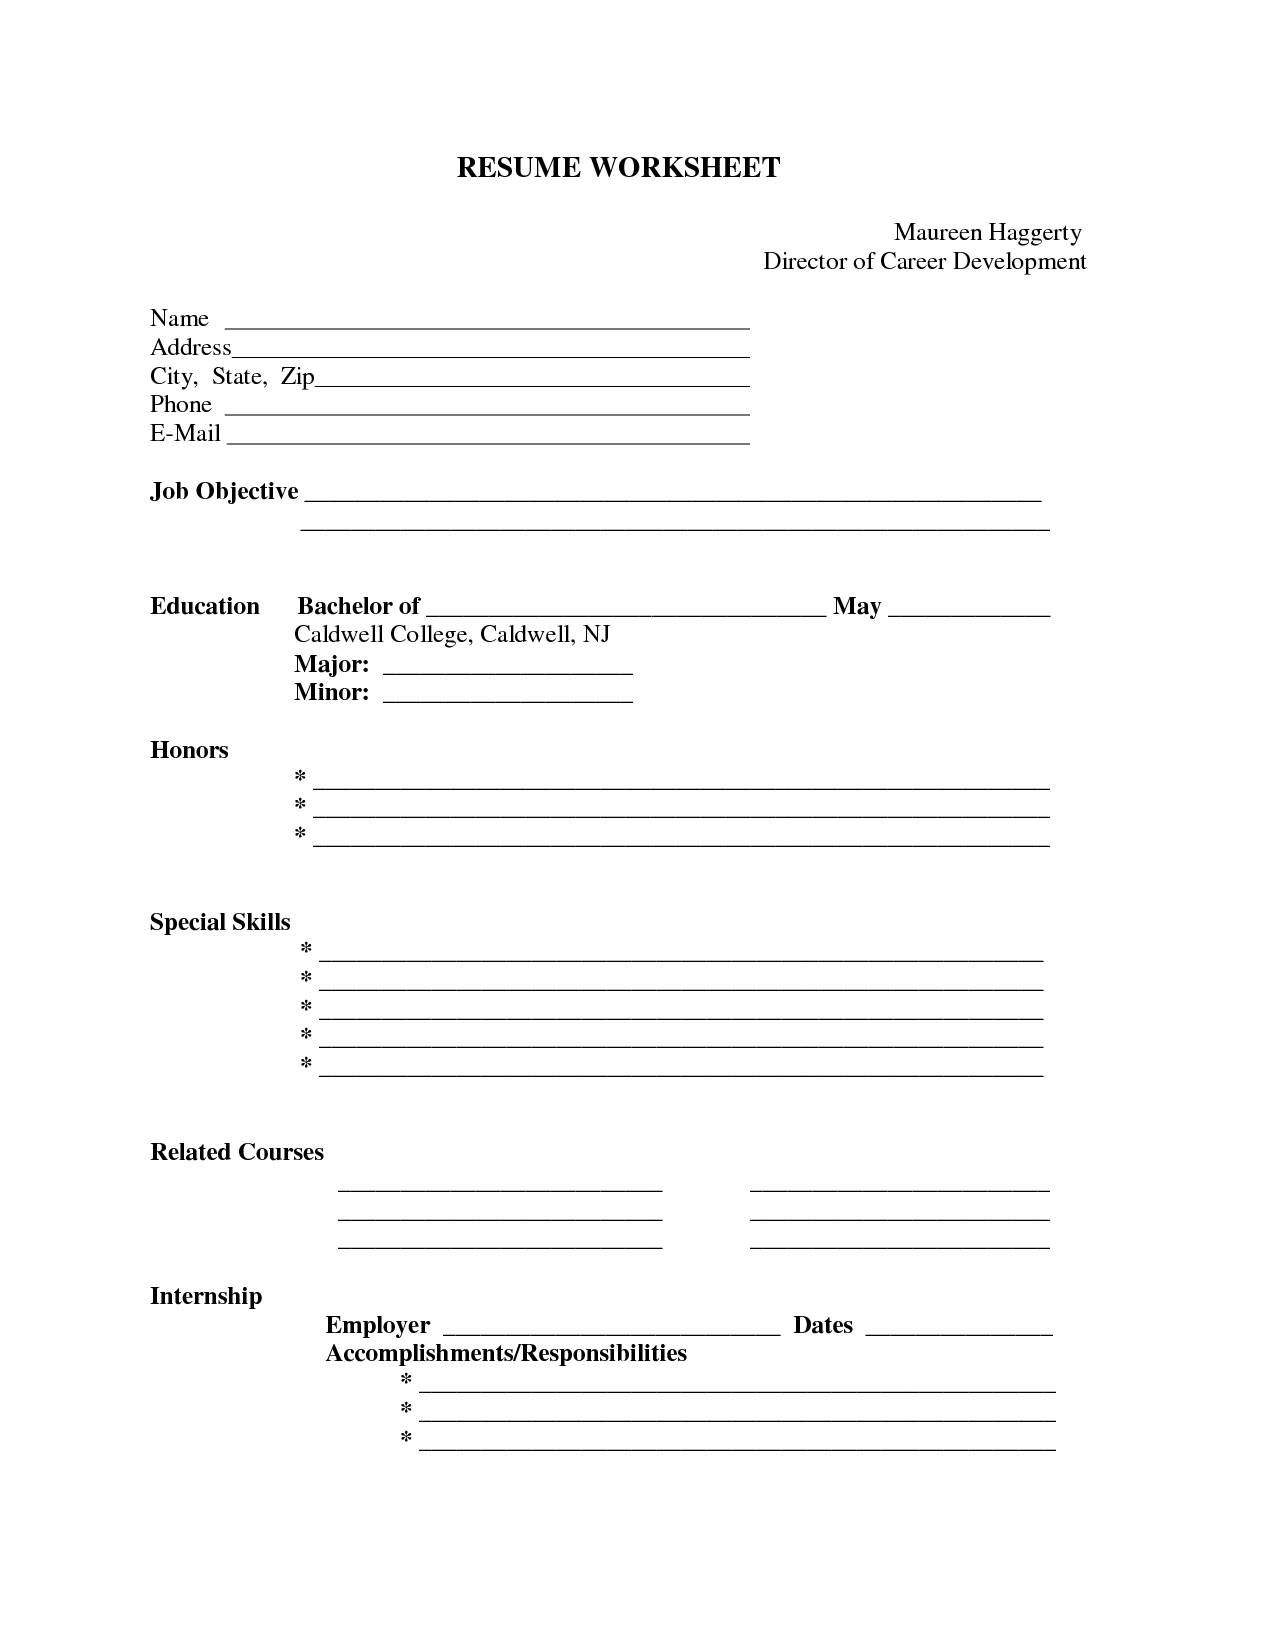 Free printable blank resume forms httpresumecareerfo free resume builder for high school students templates and print online maker template student blank ideas example yelopaper